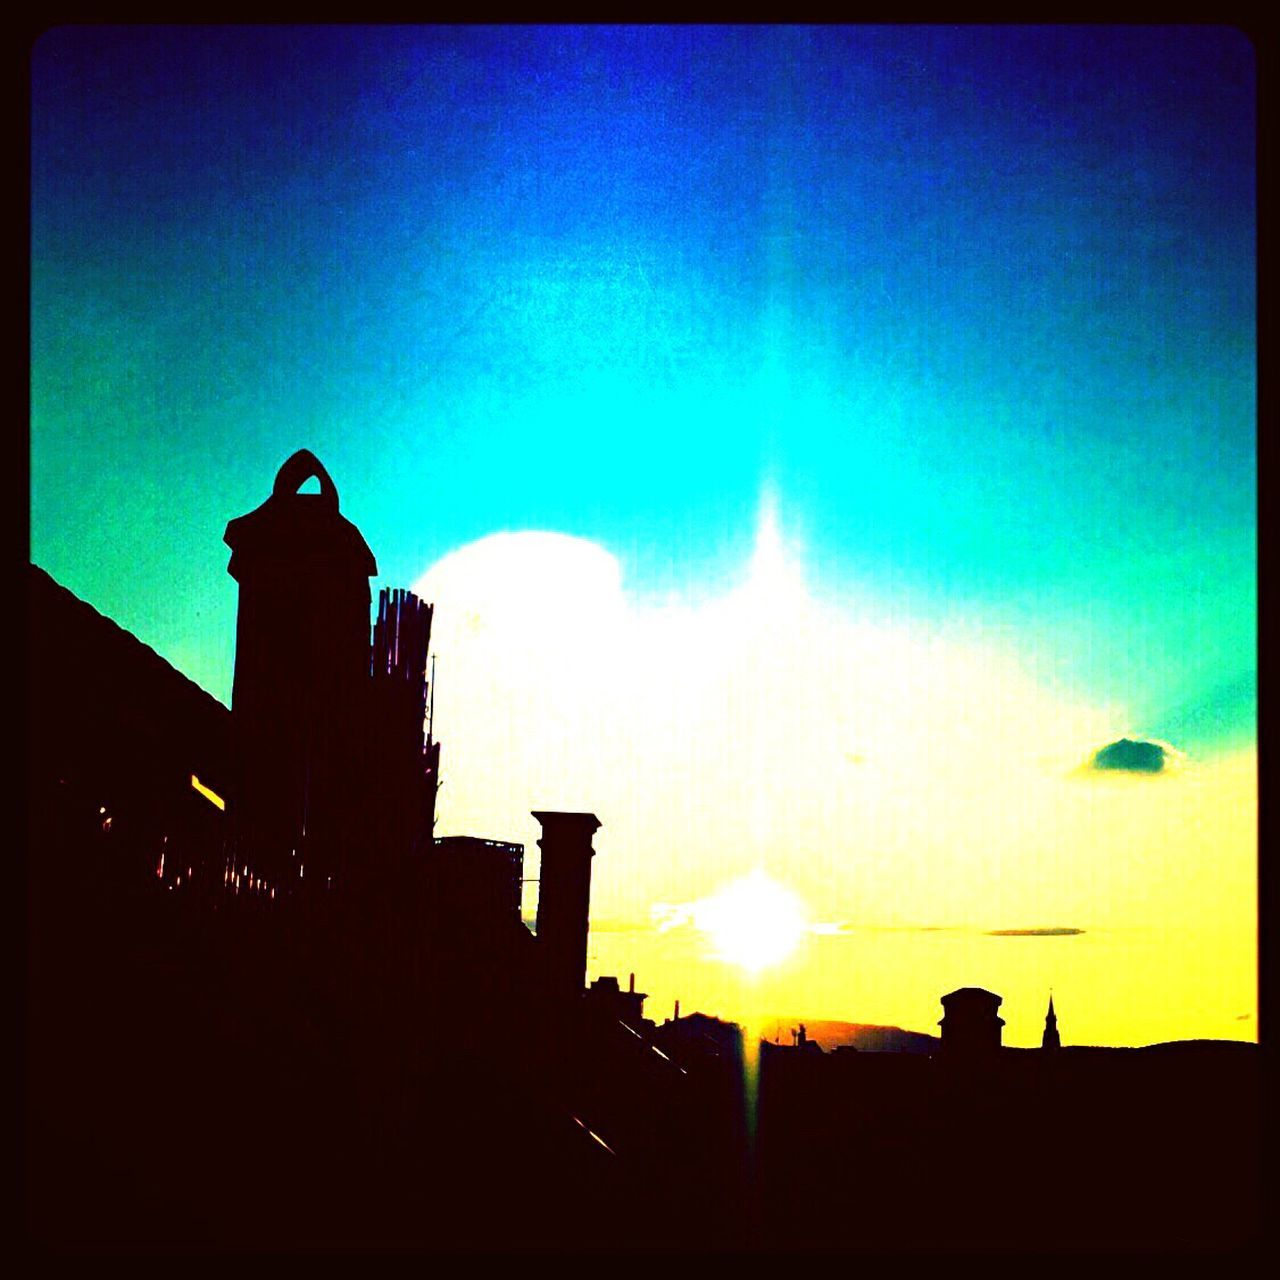 Sunsetlovers panorama winticity bynight Photography Taking Photos Picoftheday Art Sunset Skyporn Colors Cielo First Eyeem Photo